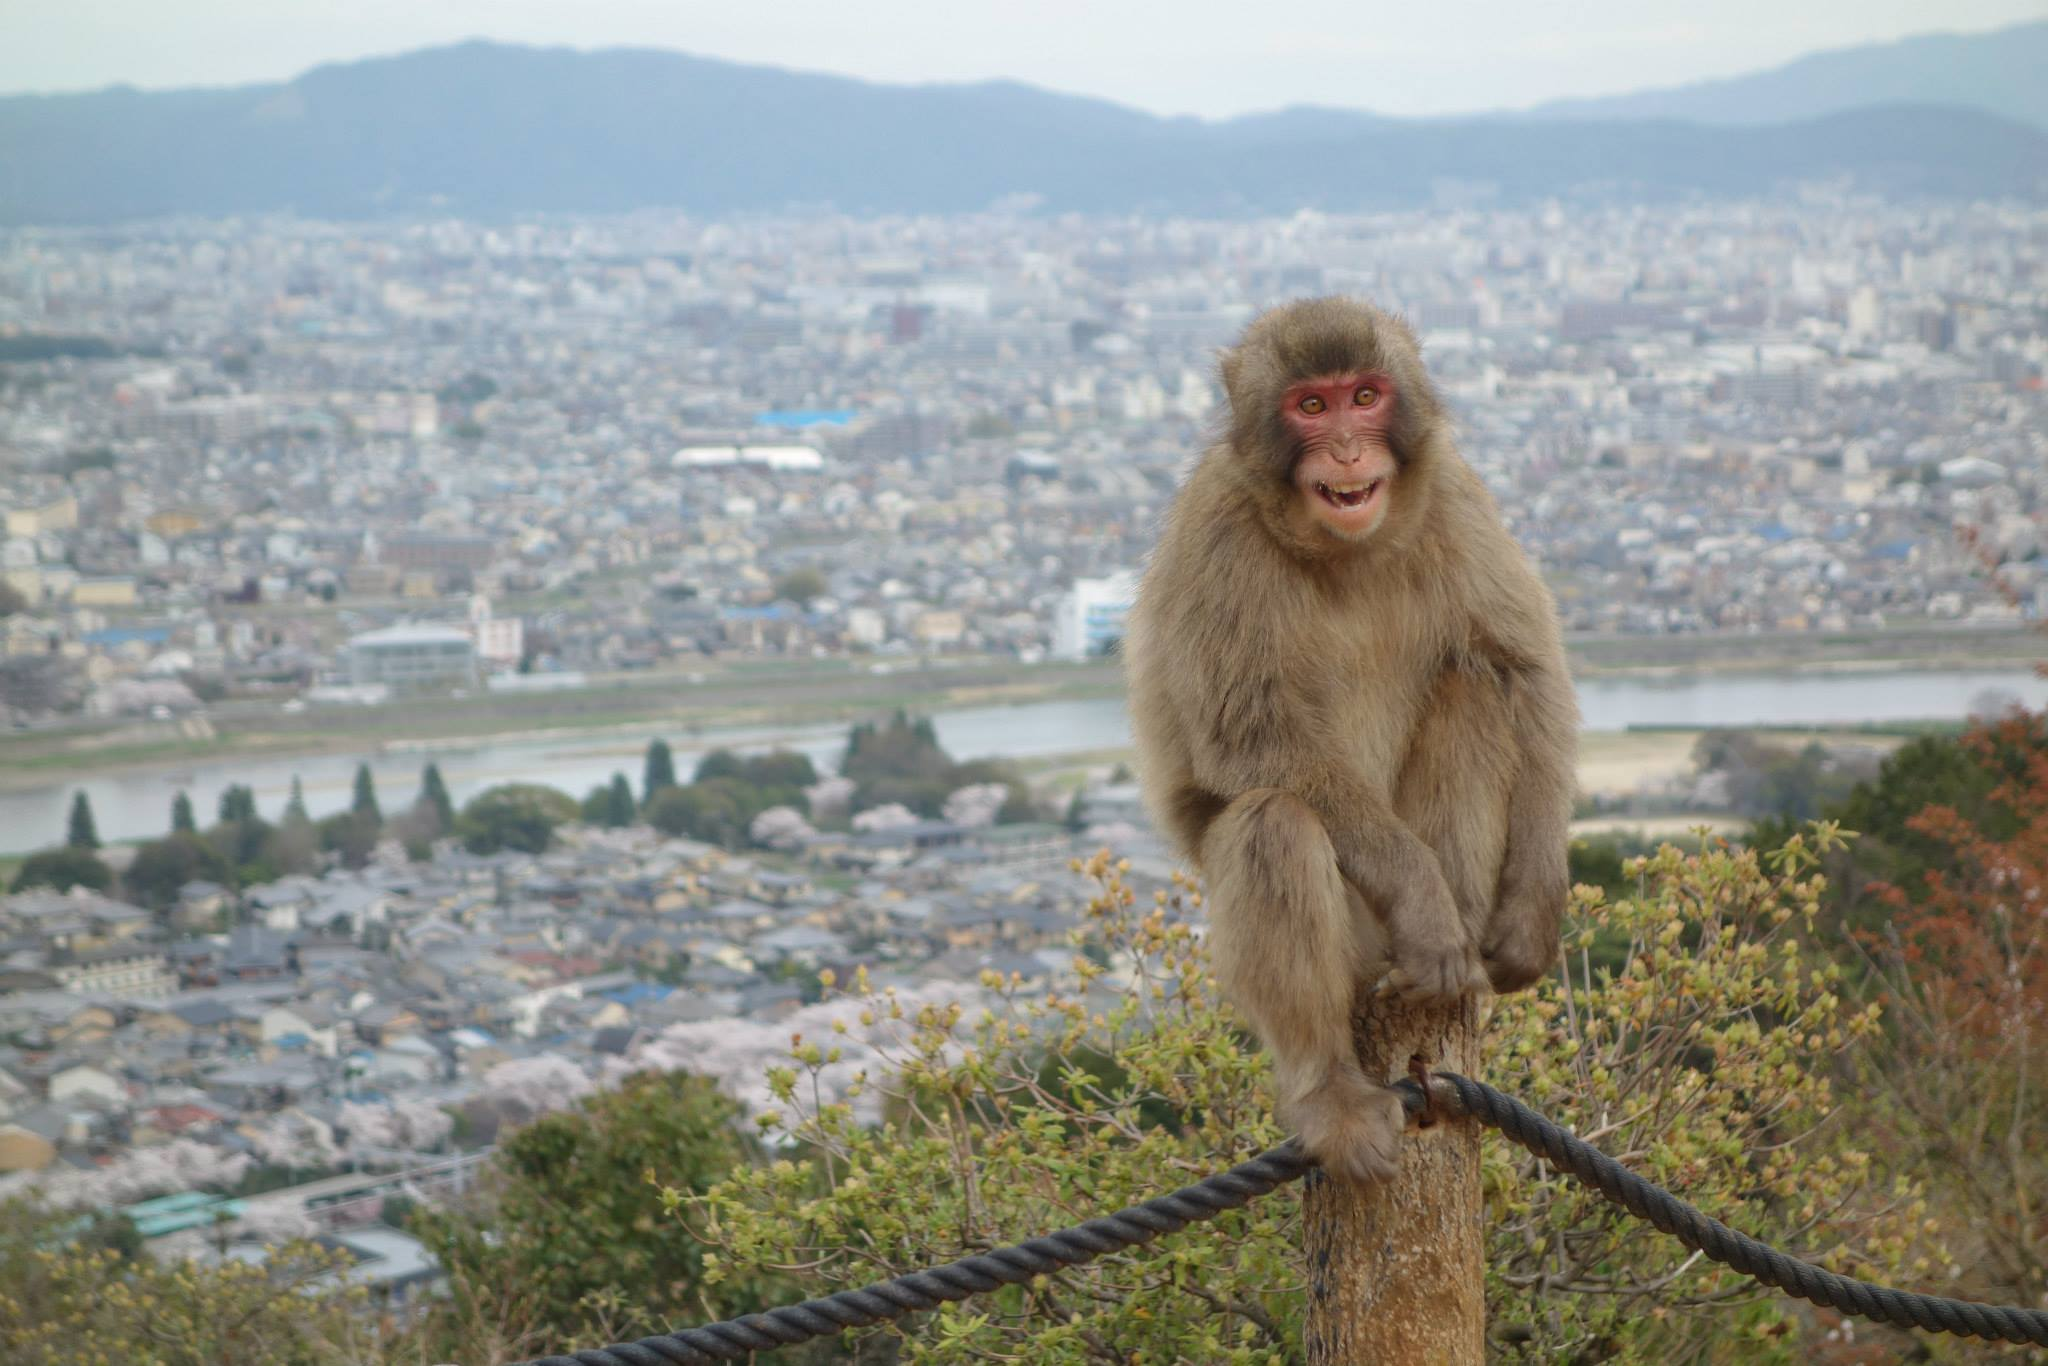 Arashiyama Monkey Park and Kyoto setting the scene